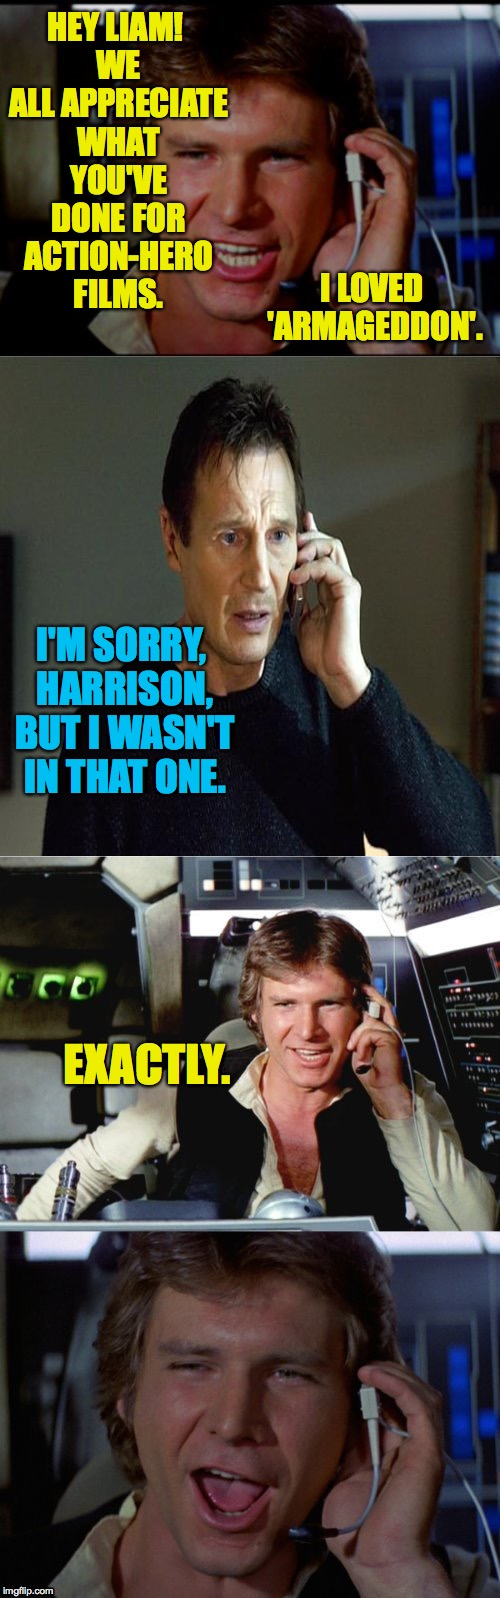 Cruel but fair Han Solo | HEY LIAM! WE ALL APPRECIATE WHAT YOU'VE DONE FOR ACTION-HERO FILMS. EXACTLY. I LOVED 'ARMAGEDDON'. I'M SORRY, HARRISON, BUT I WASN'T IN THAT | image tagged in bad pun han solo,han solo,liam neeson,star wars,memes | made w/ Imgflip meme maker